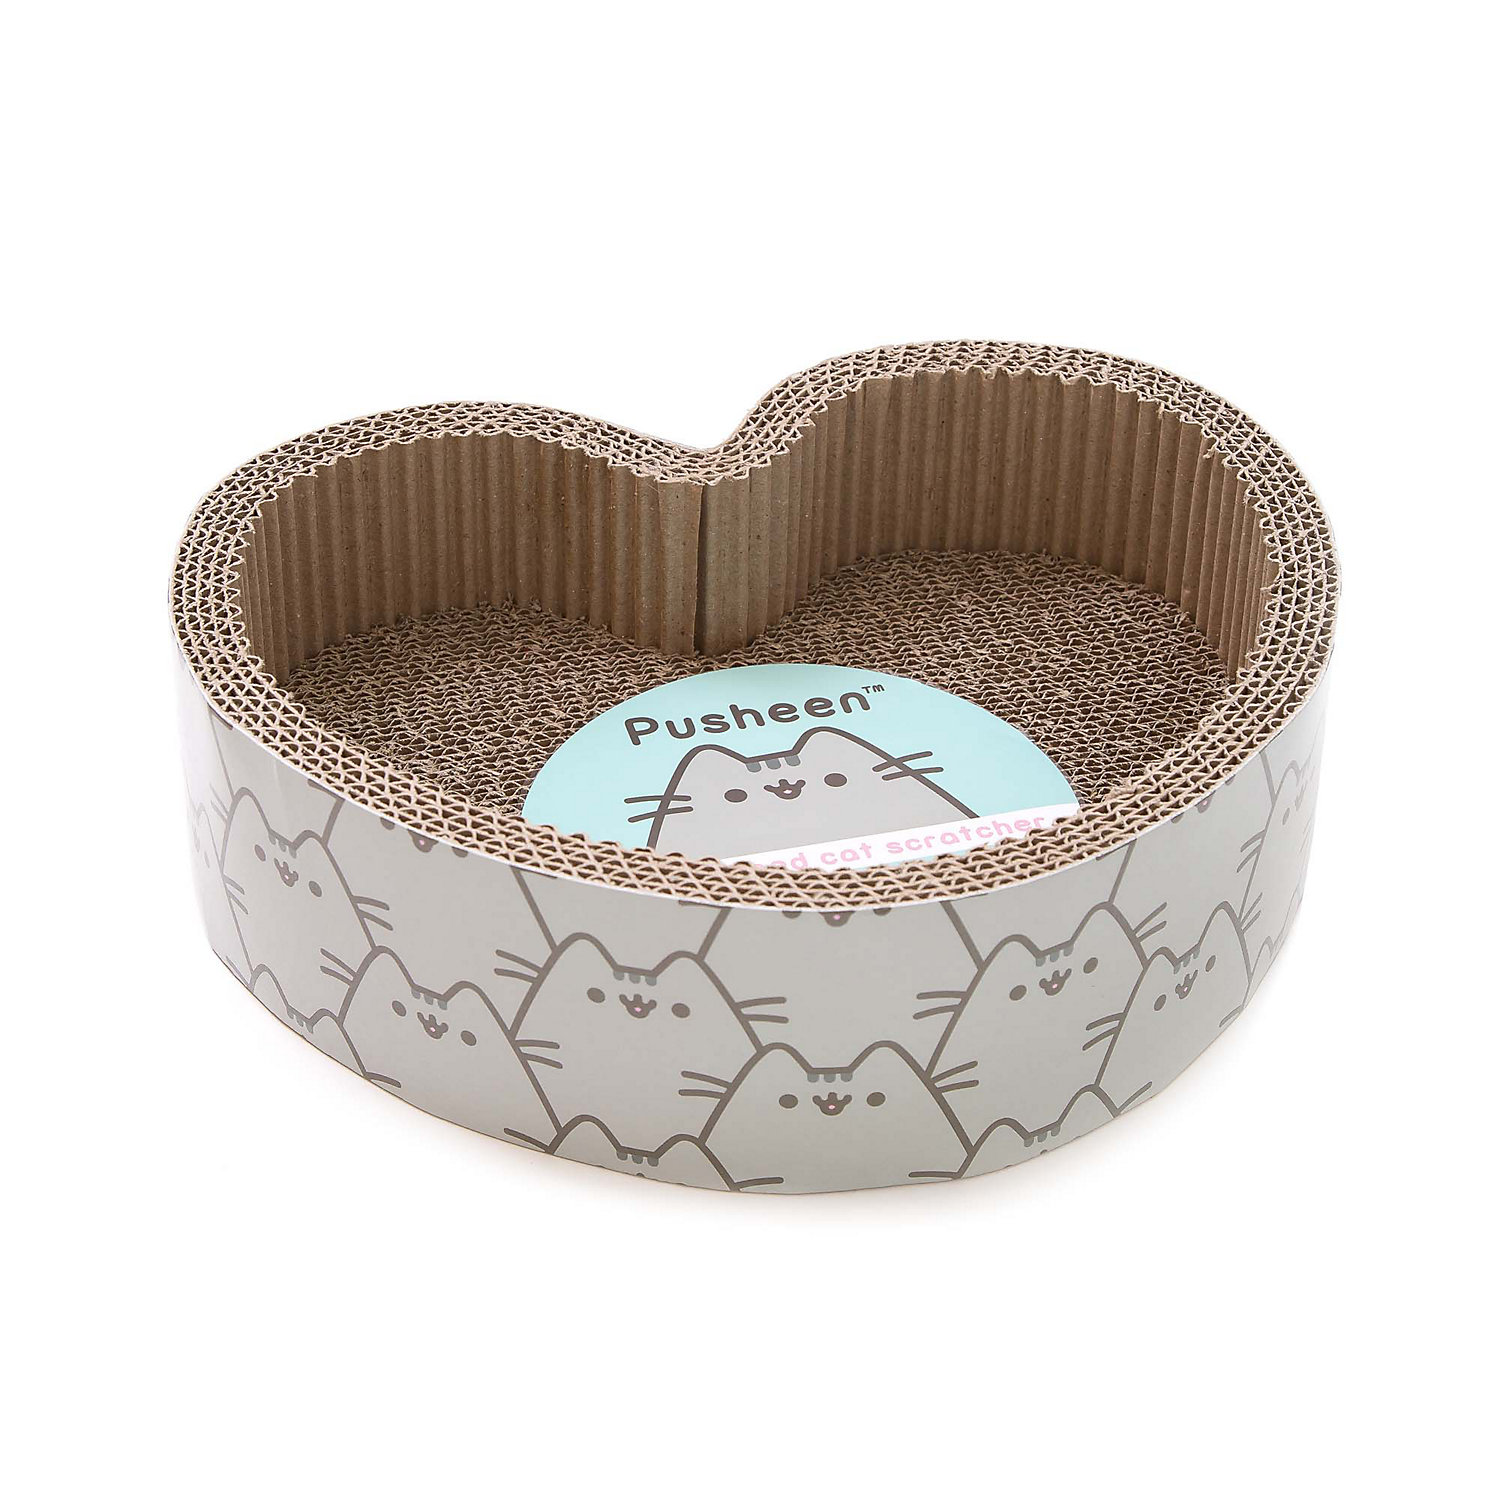 Pusheen Heart-Shaped Cat Scratcher, Medium